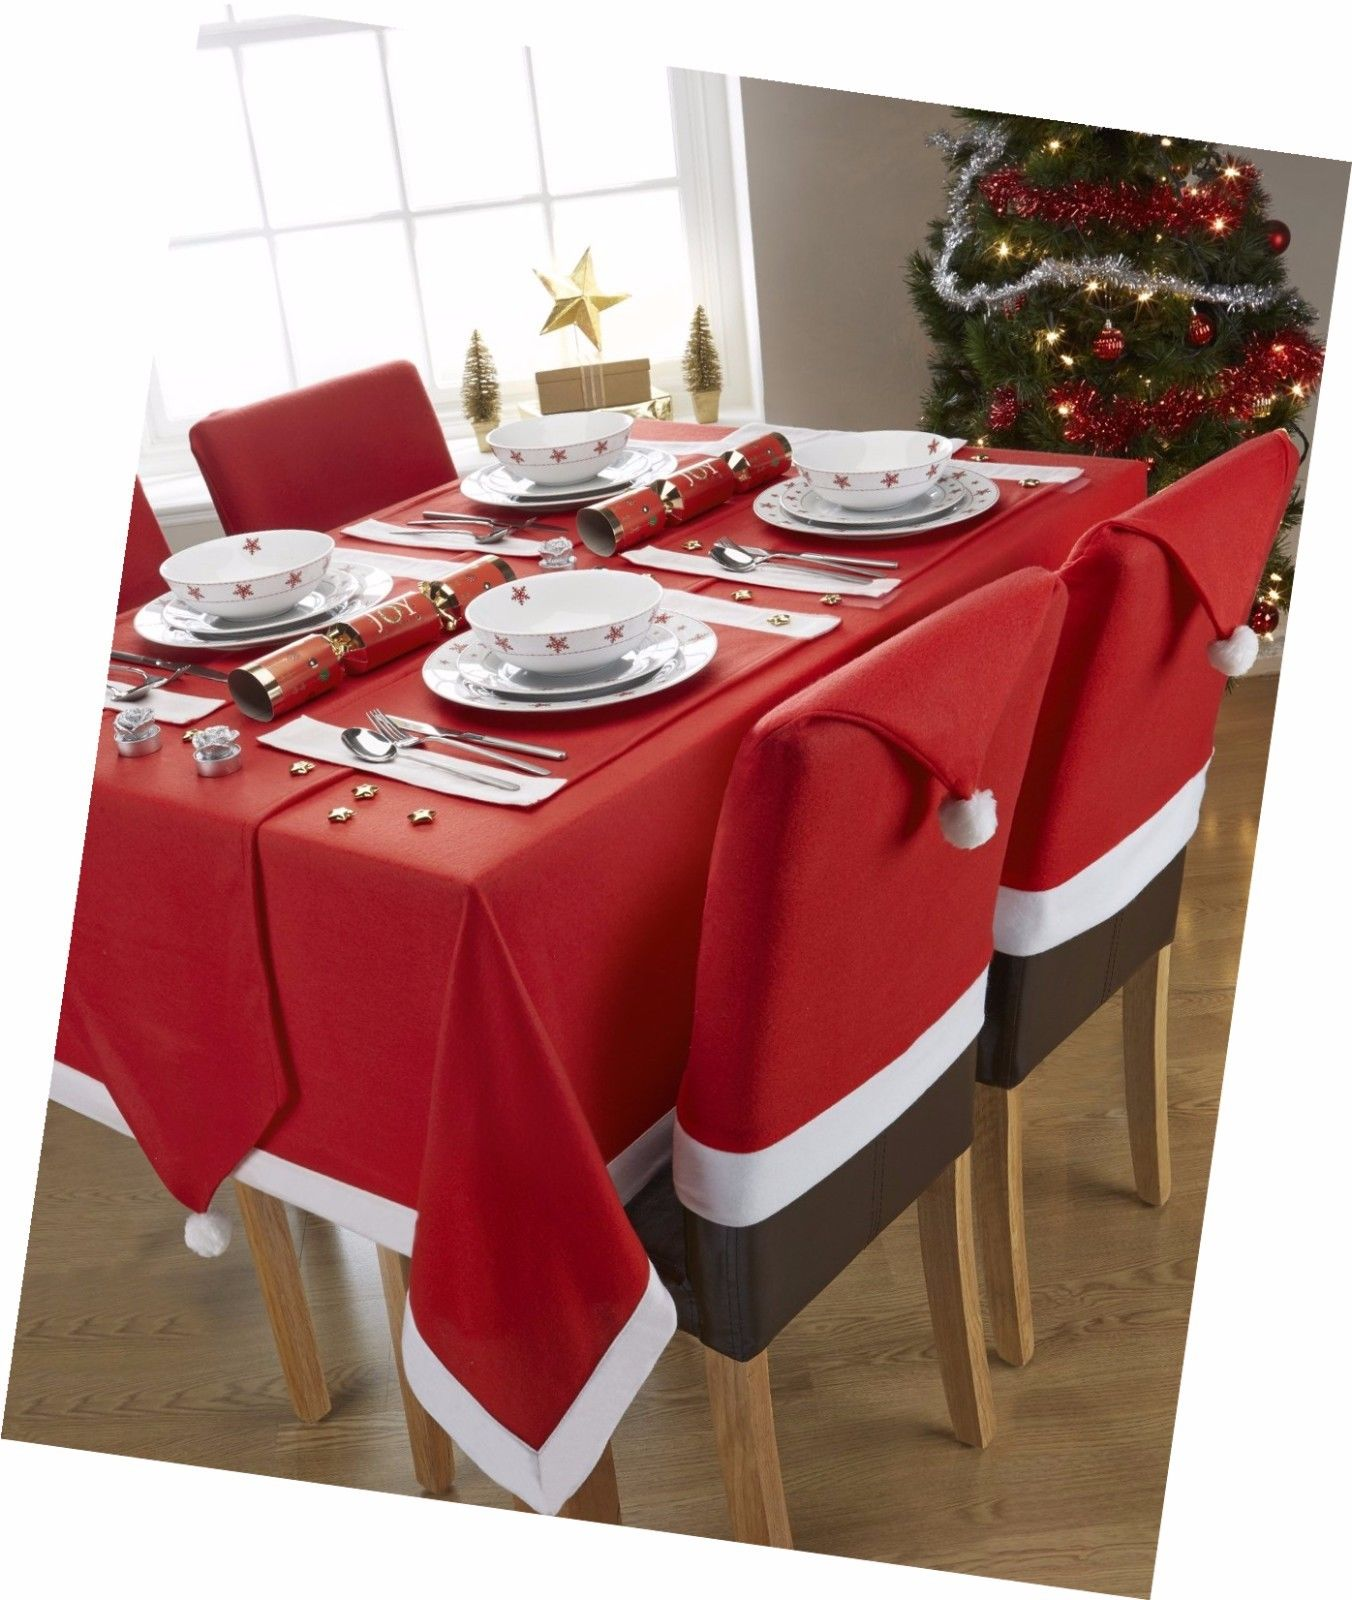 6 Christmas Chair Covers Dinner Table Santa Hat Home